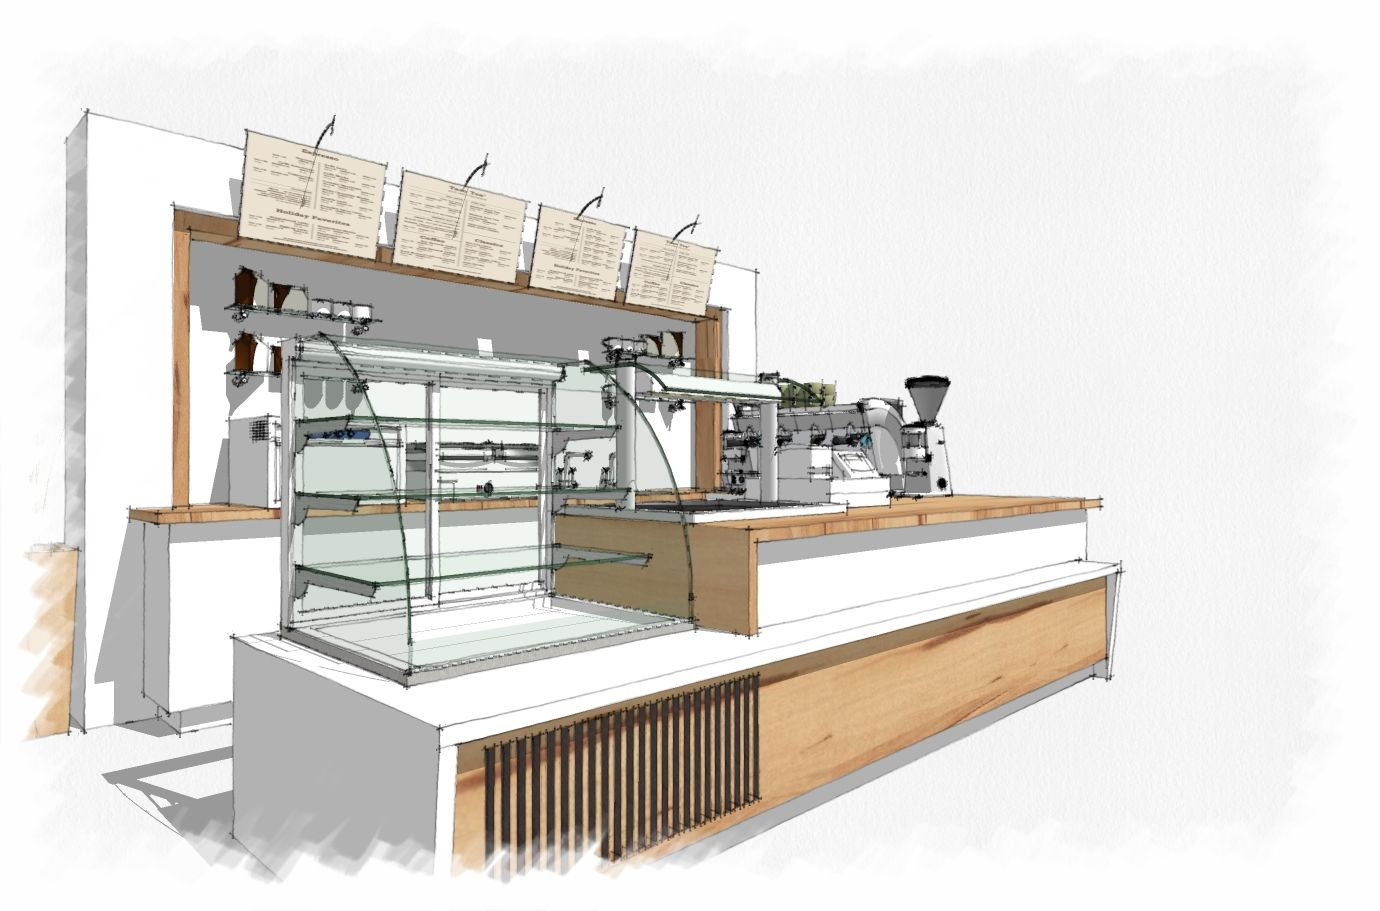 Interior design drawing interiors design - Coffee Bar Sketchup Interior Design Concept Rendering